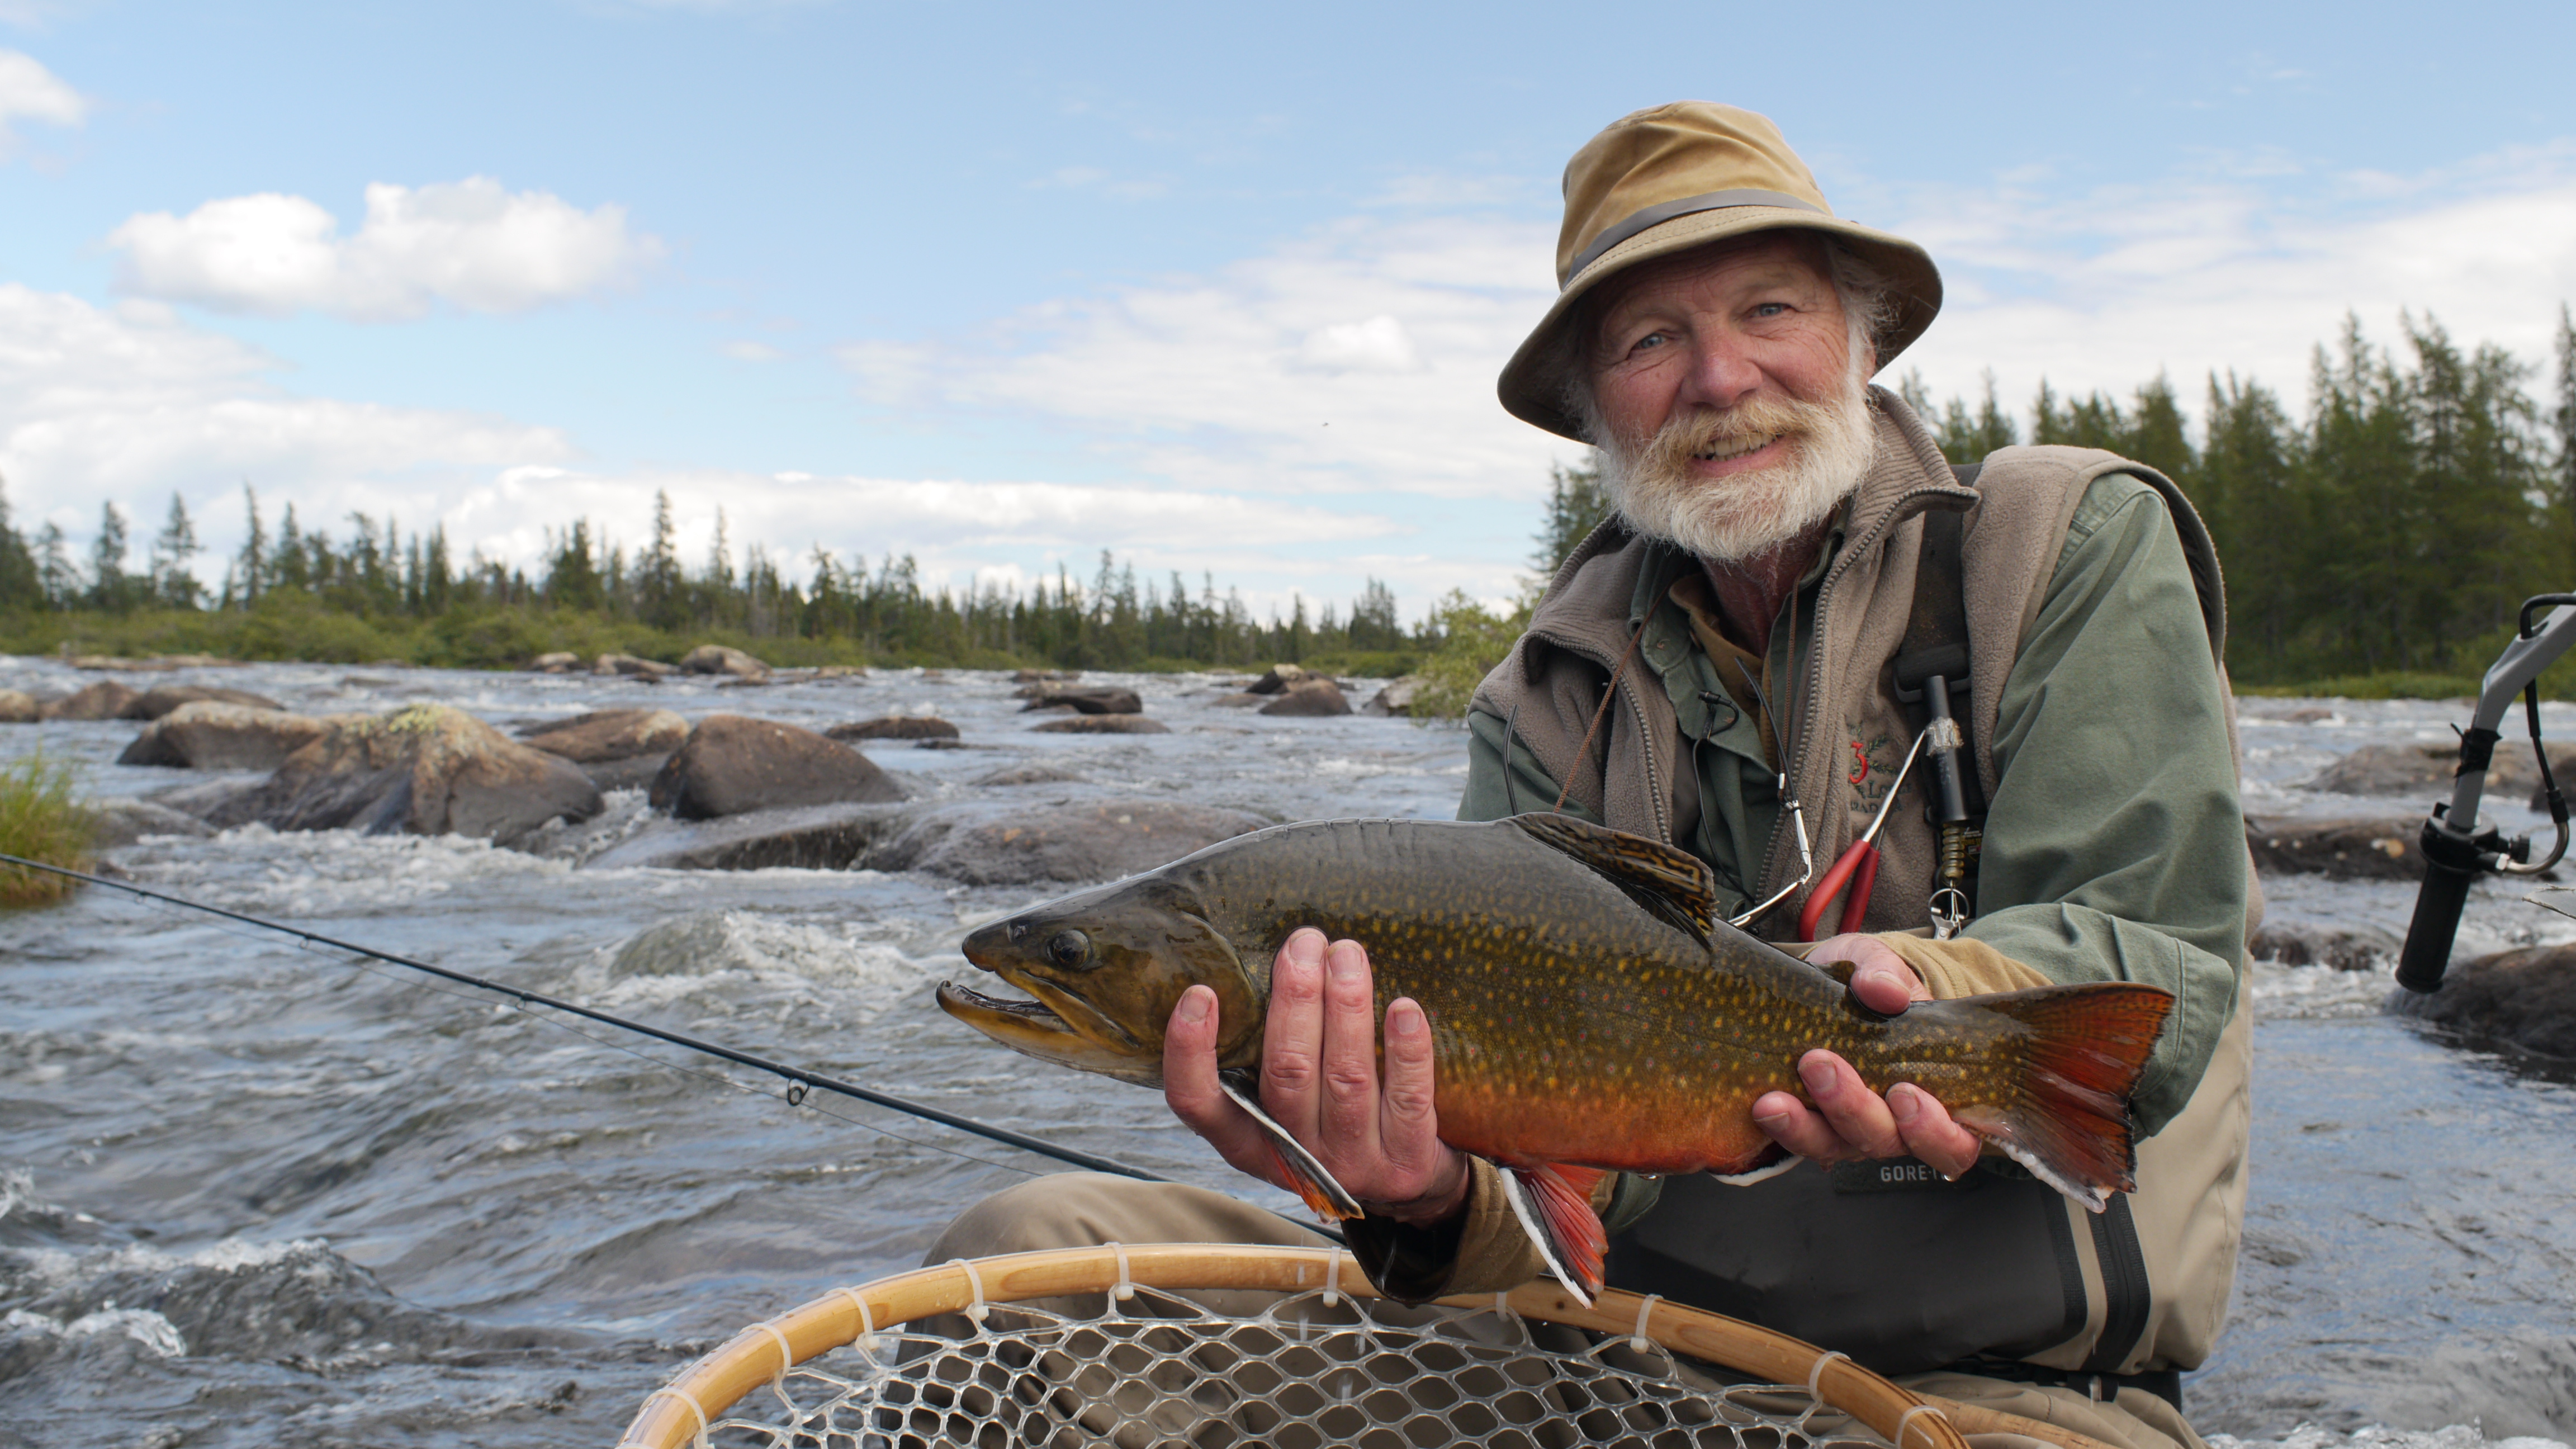 Fly fishing film tour returns with another great lineup for Fly fishing films